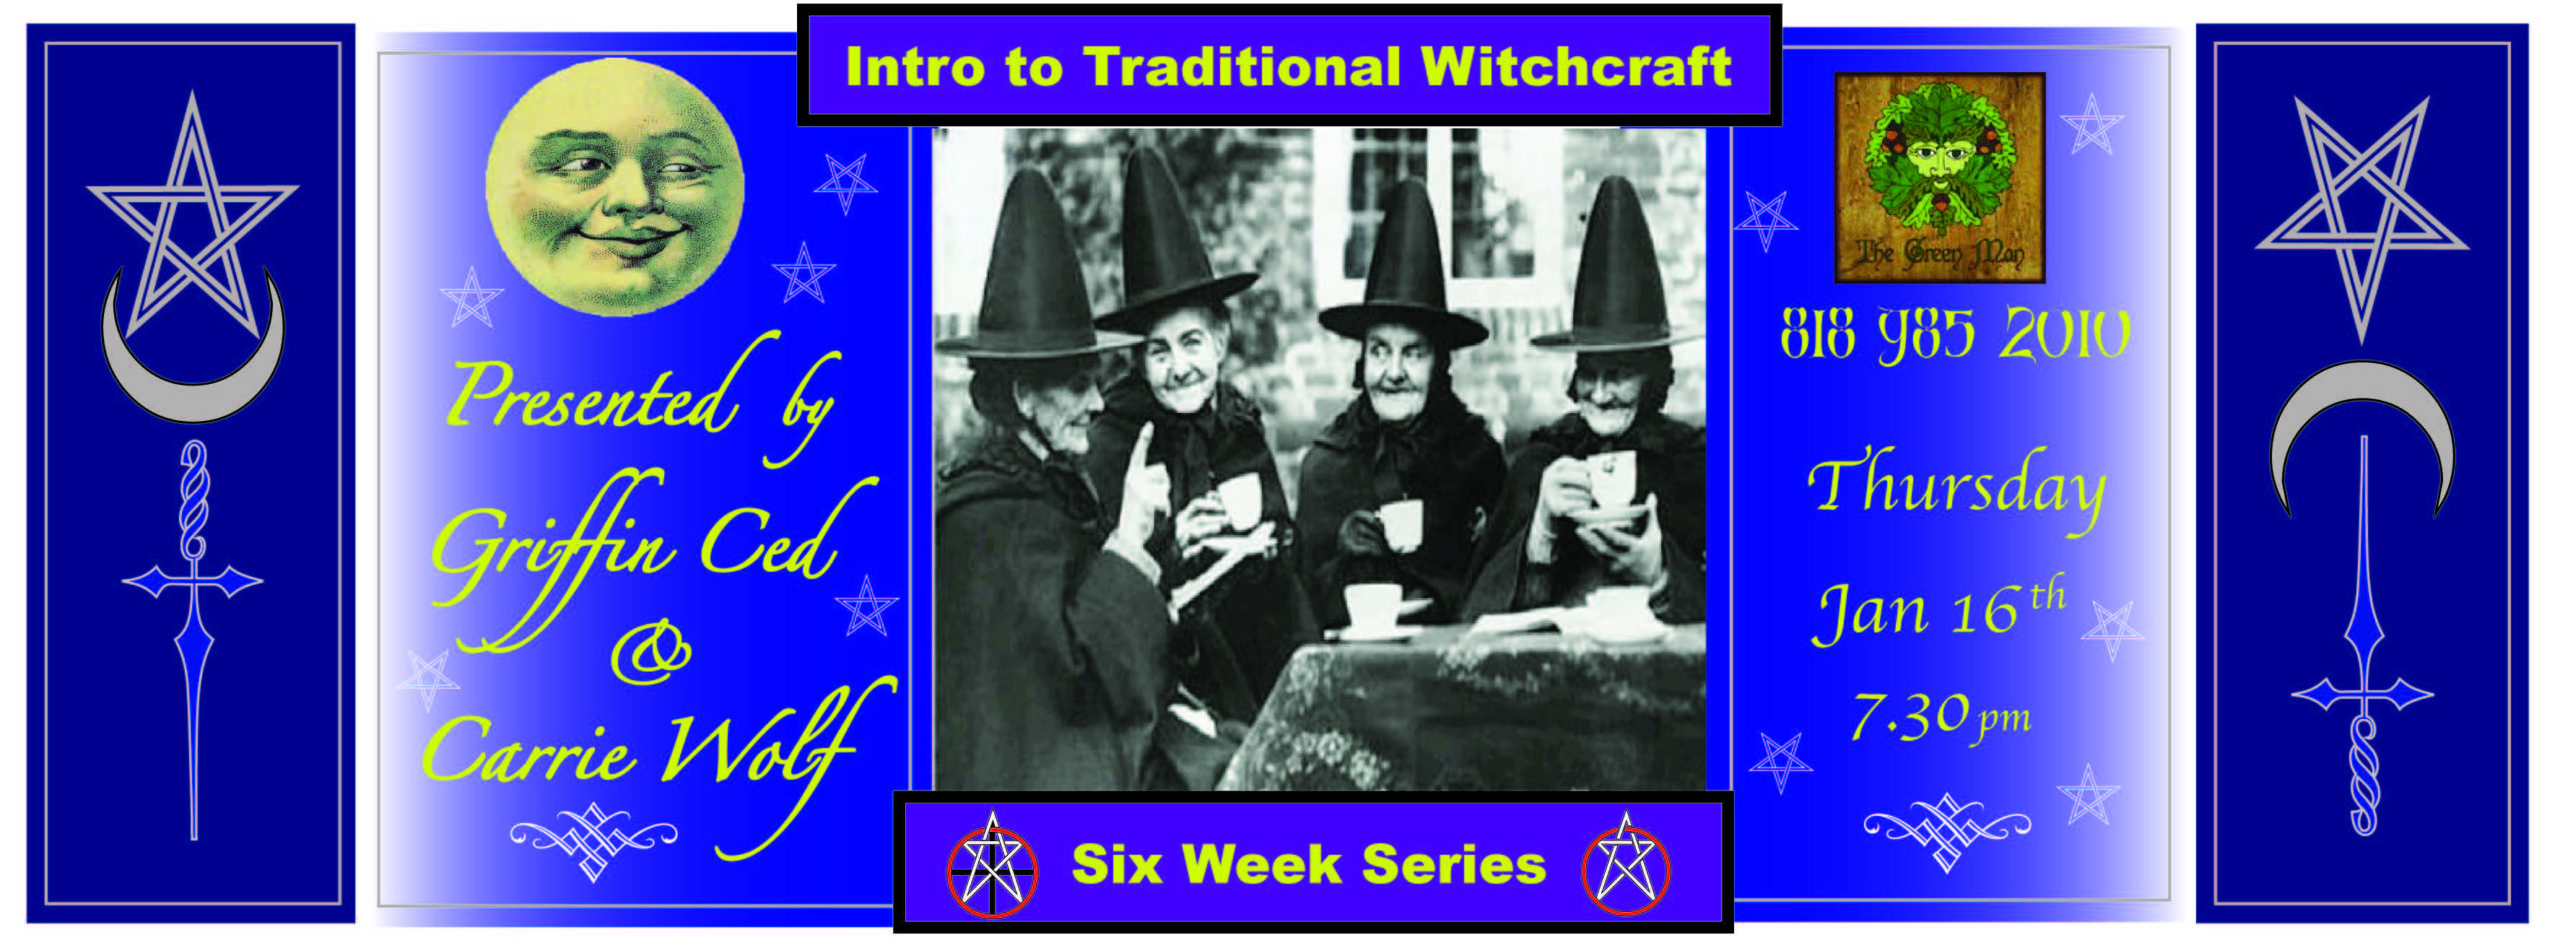 Witchcraft for Beginners with Griffin & Carrie flyer